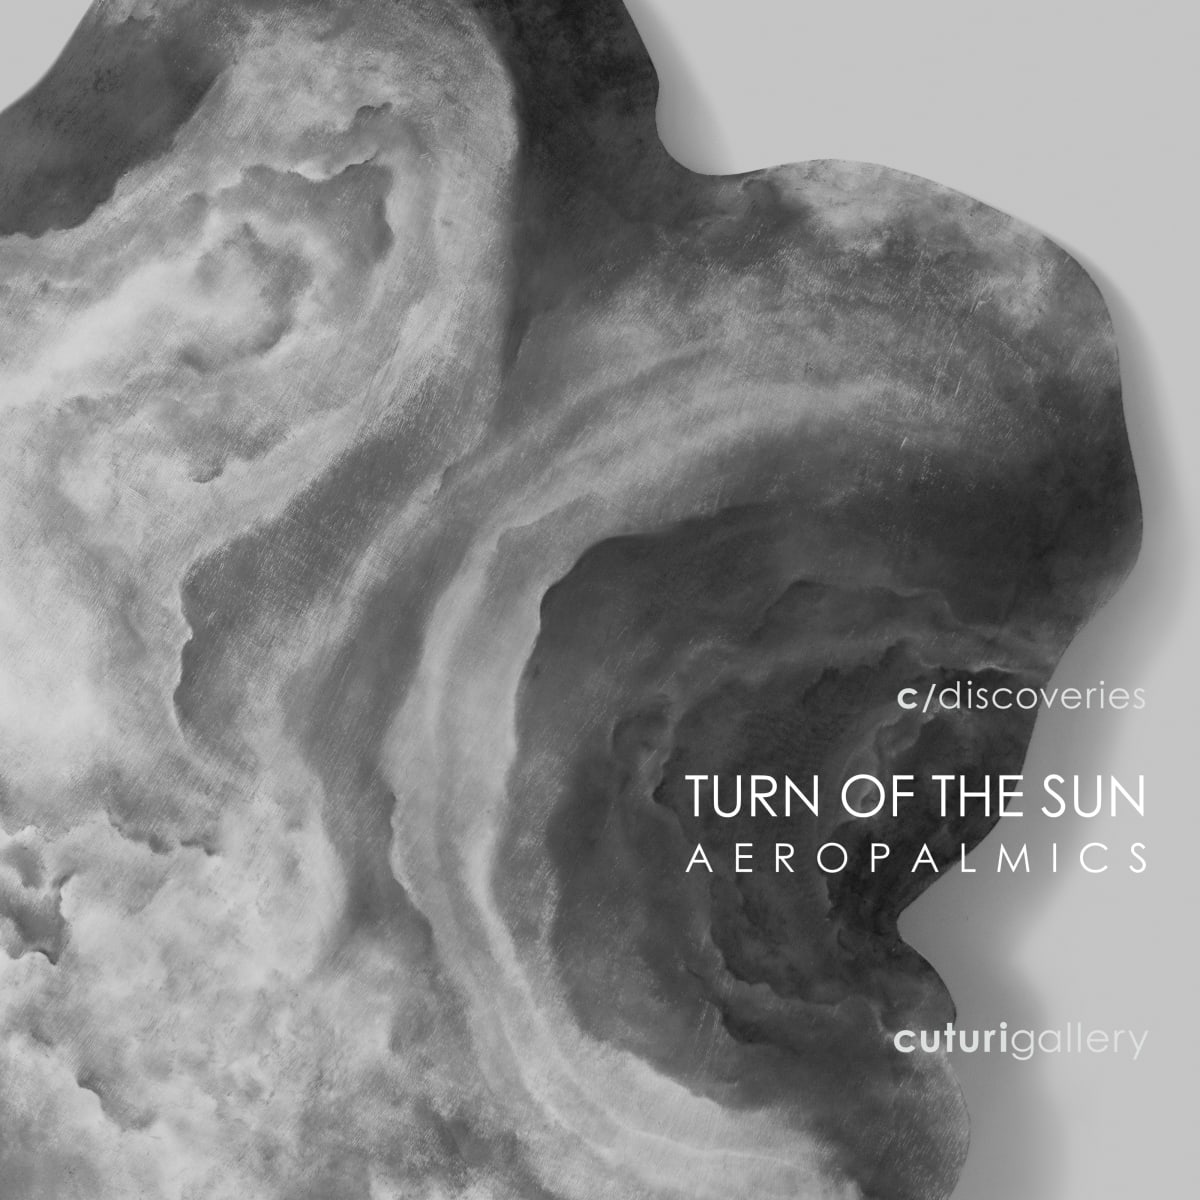 c/discoveries: Turn of the Sun